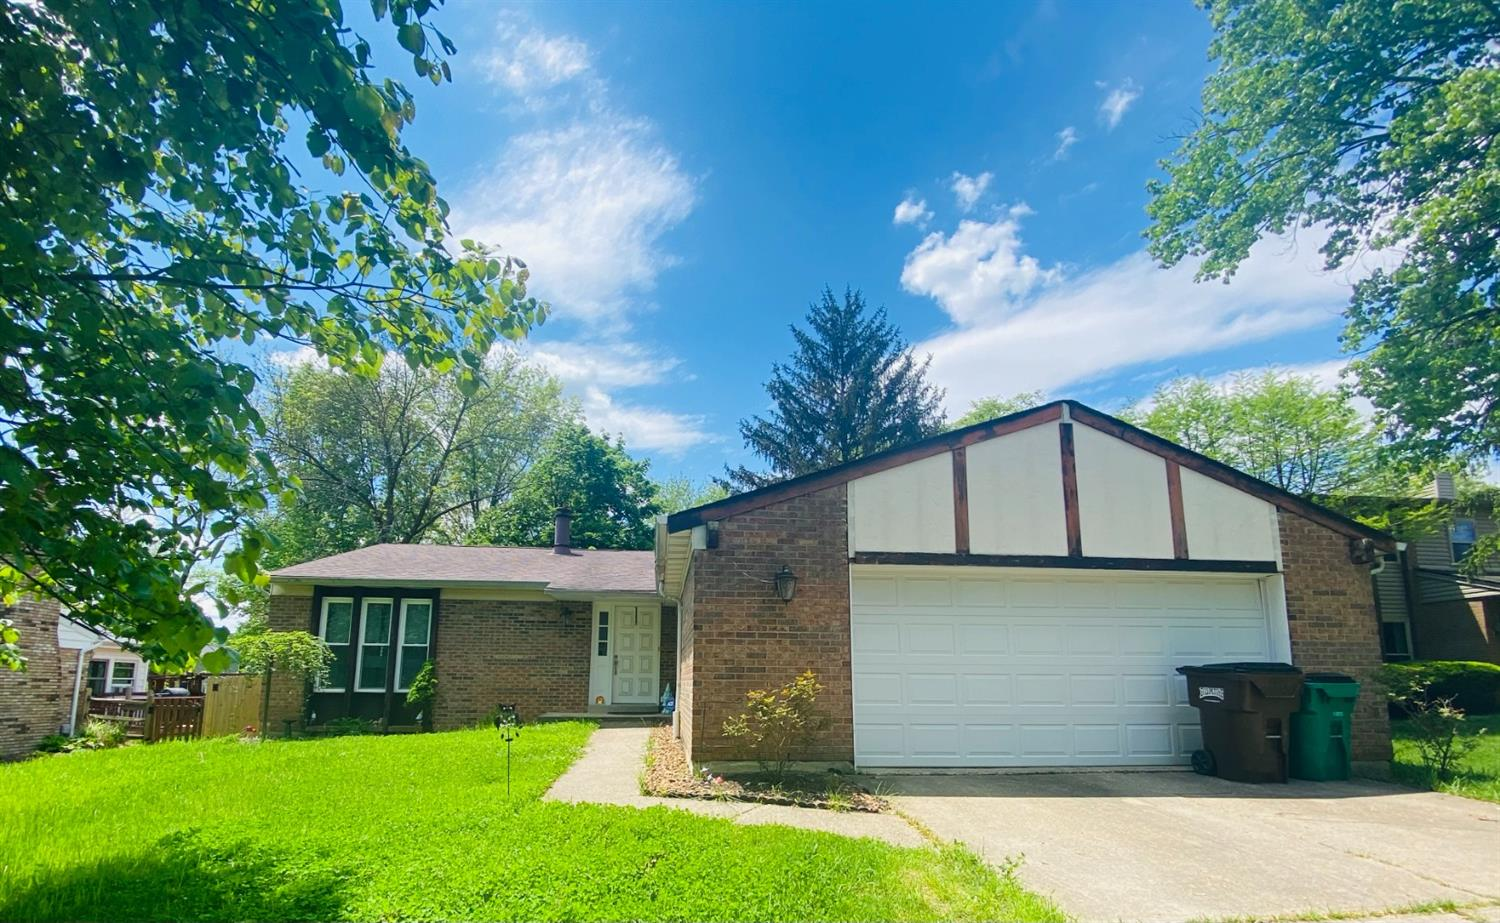 155 Albright Drive, Loveland, Ohio 45140, 3 Bedrooms Bedrooms, 7 Rooms Rooms,2 BathroomsBathrooms,Single Family Residence,For Sale,Albright,1699223